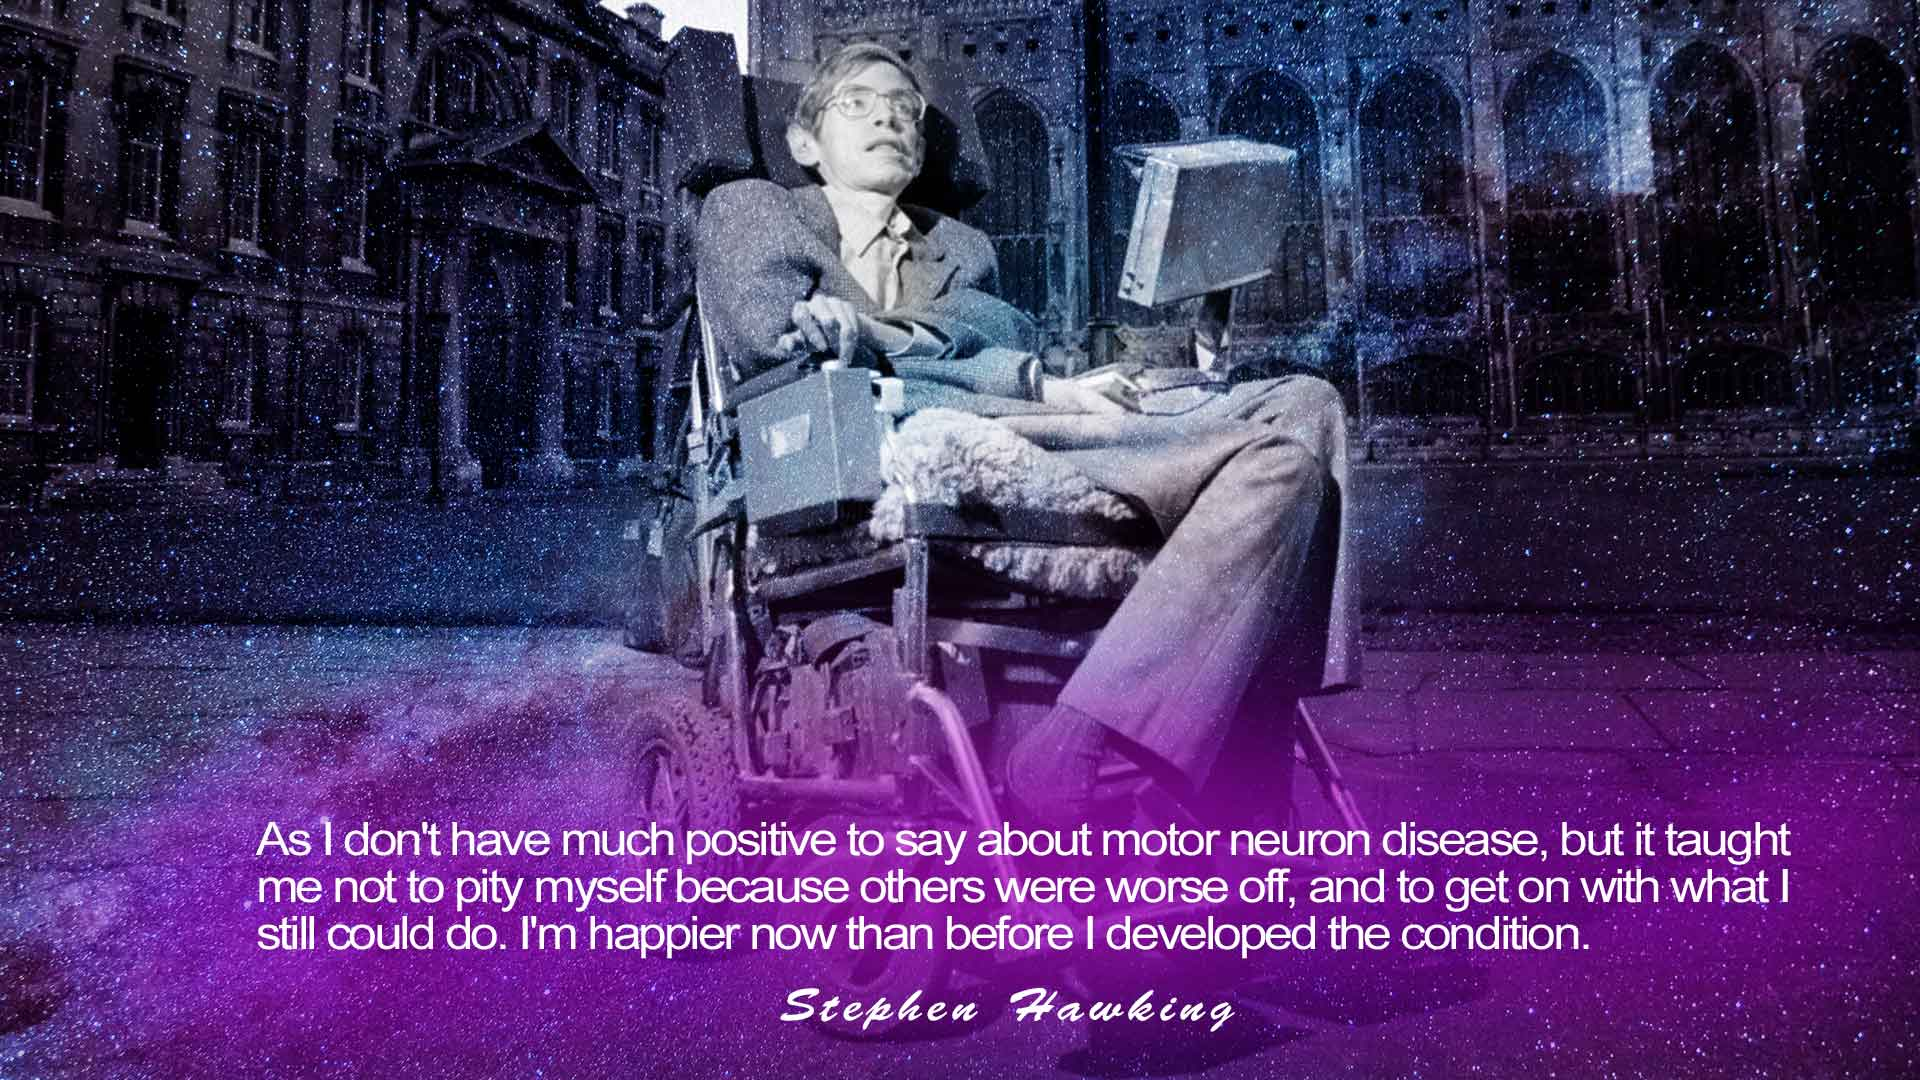 Stephen-Hawking-Quote-For-Those-Who-Sick-Or-Has-Any-Disease